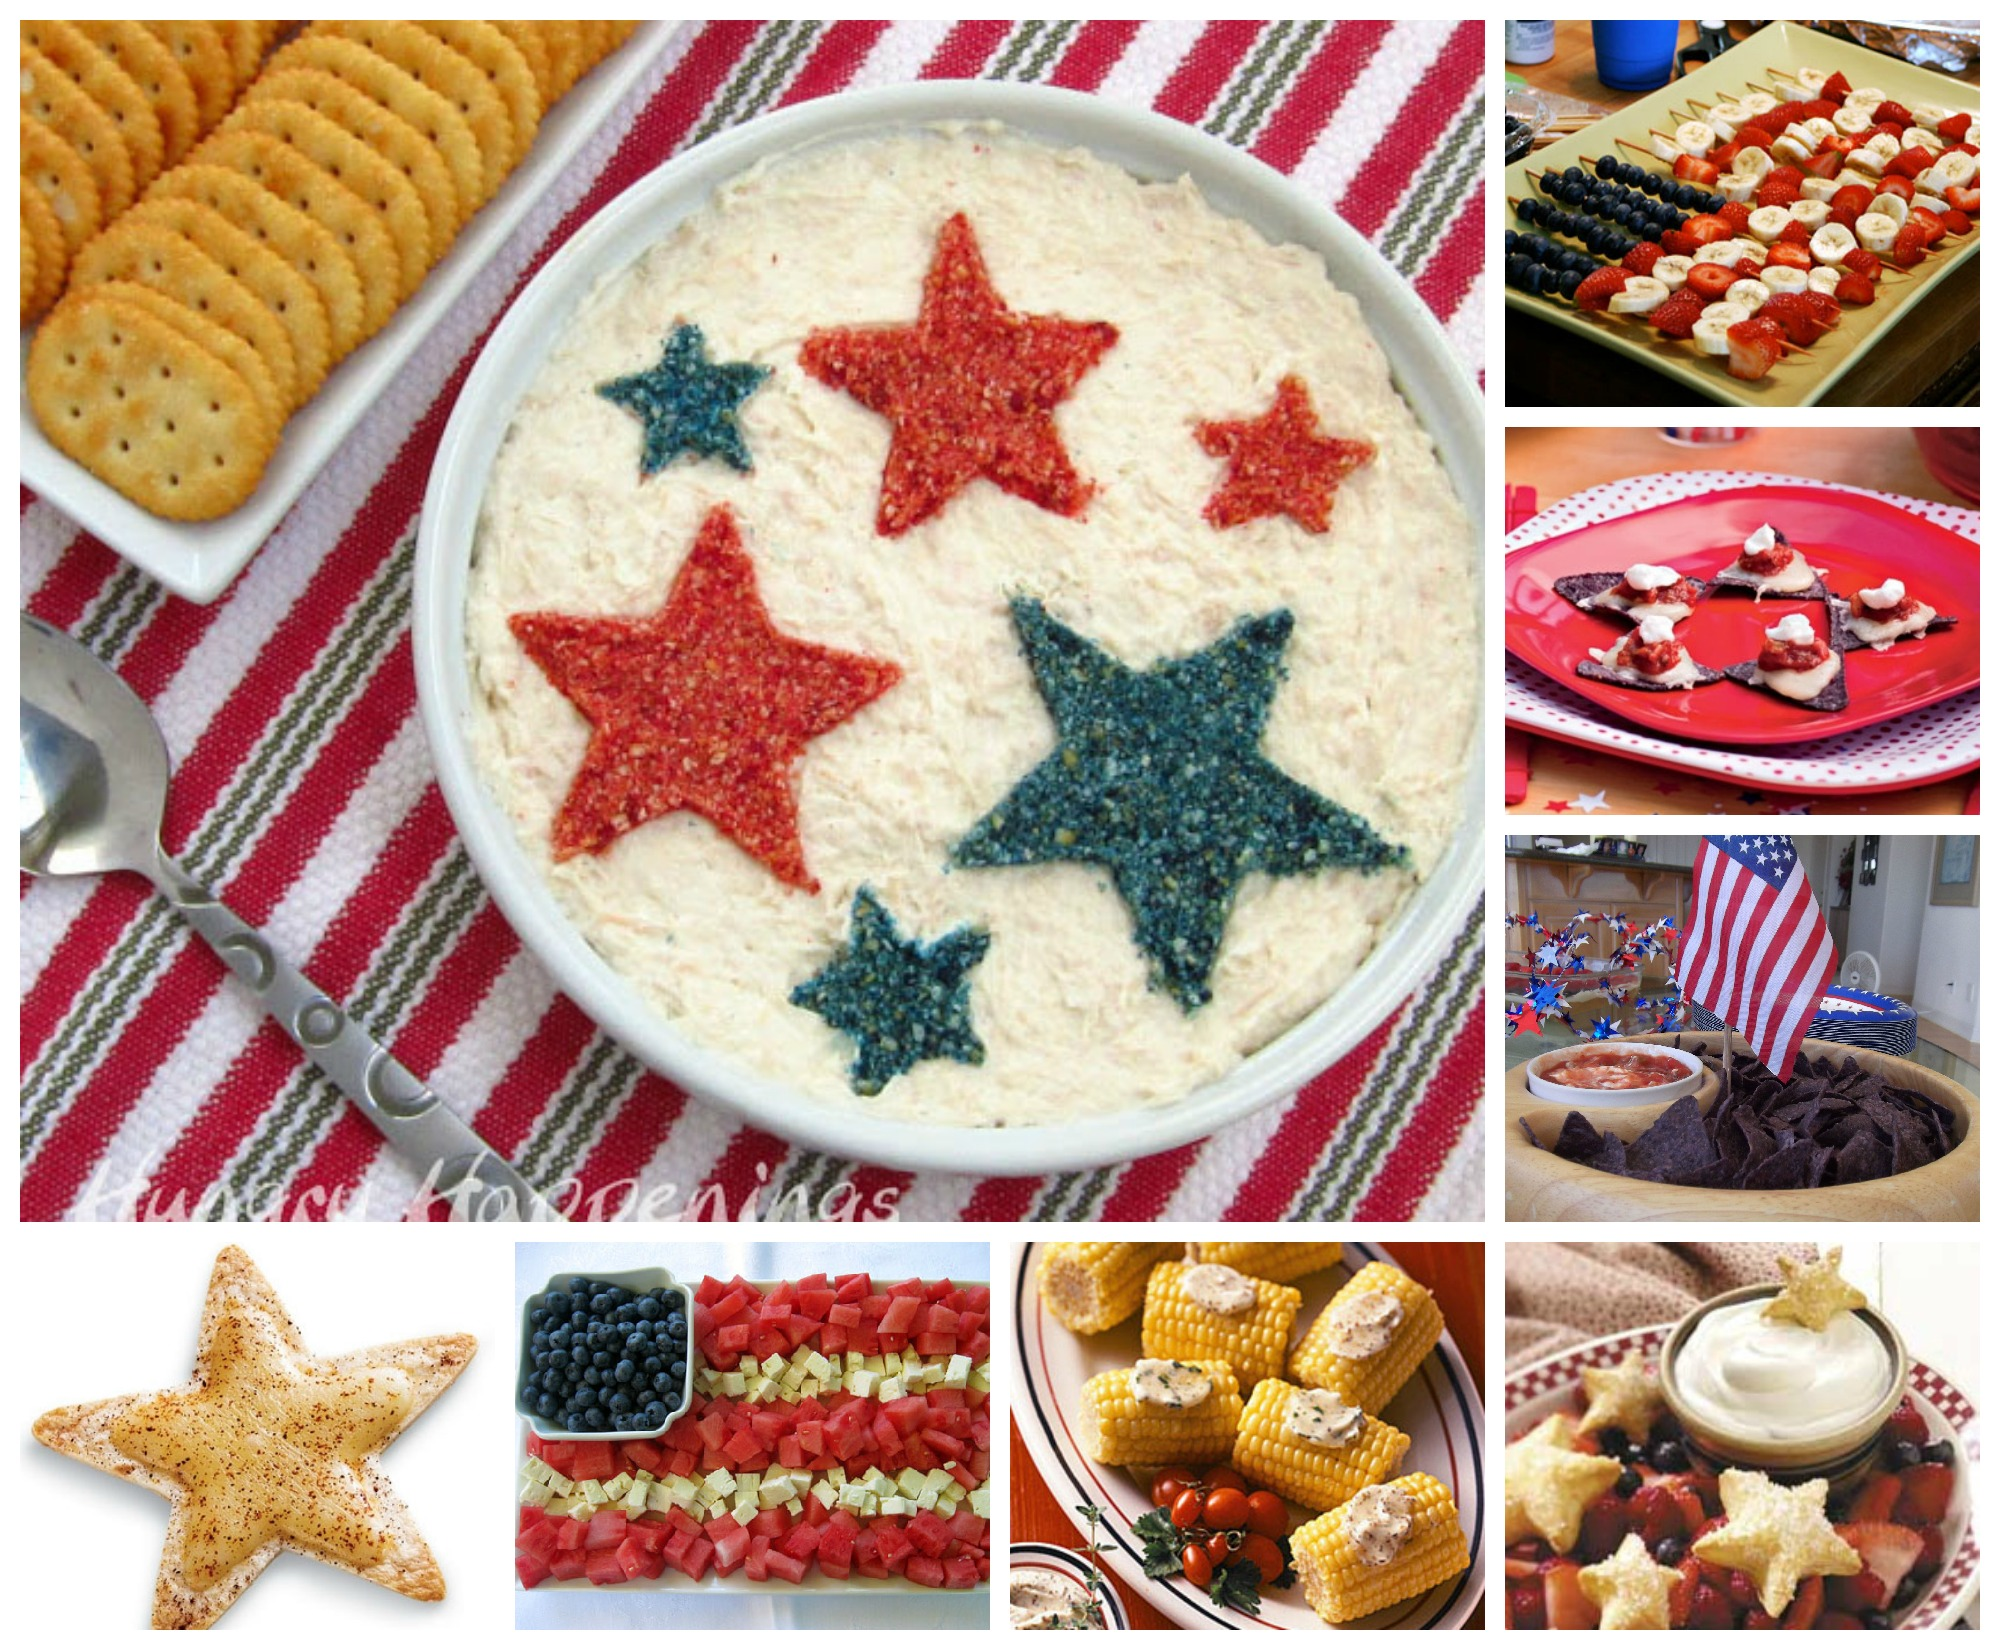 July 4th Appetizer Ideas and Recipes